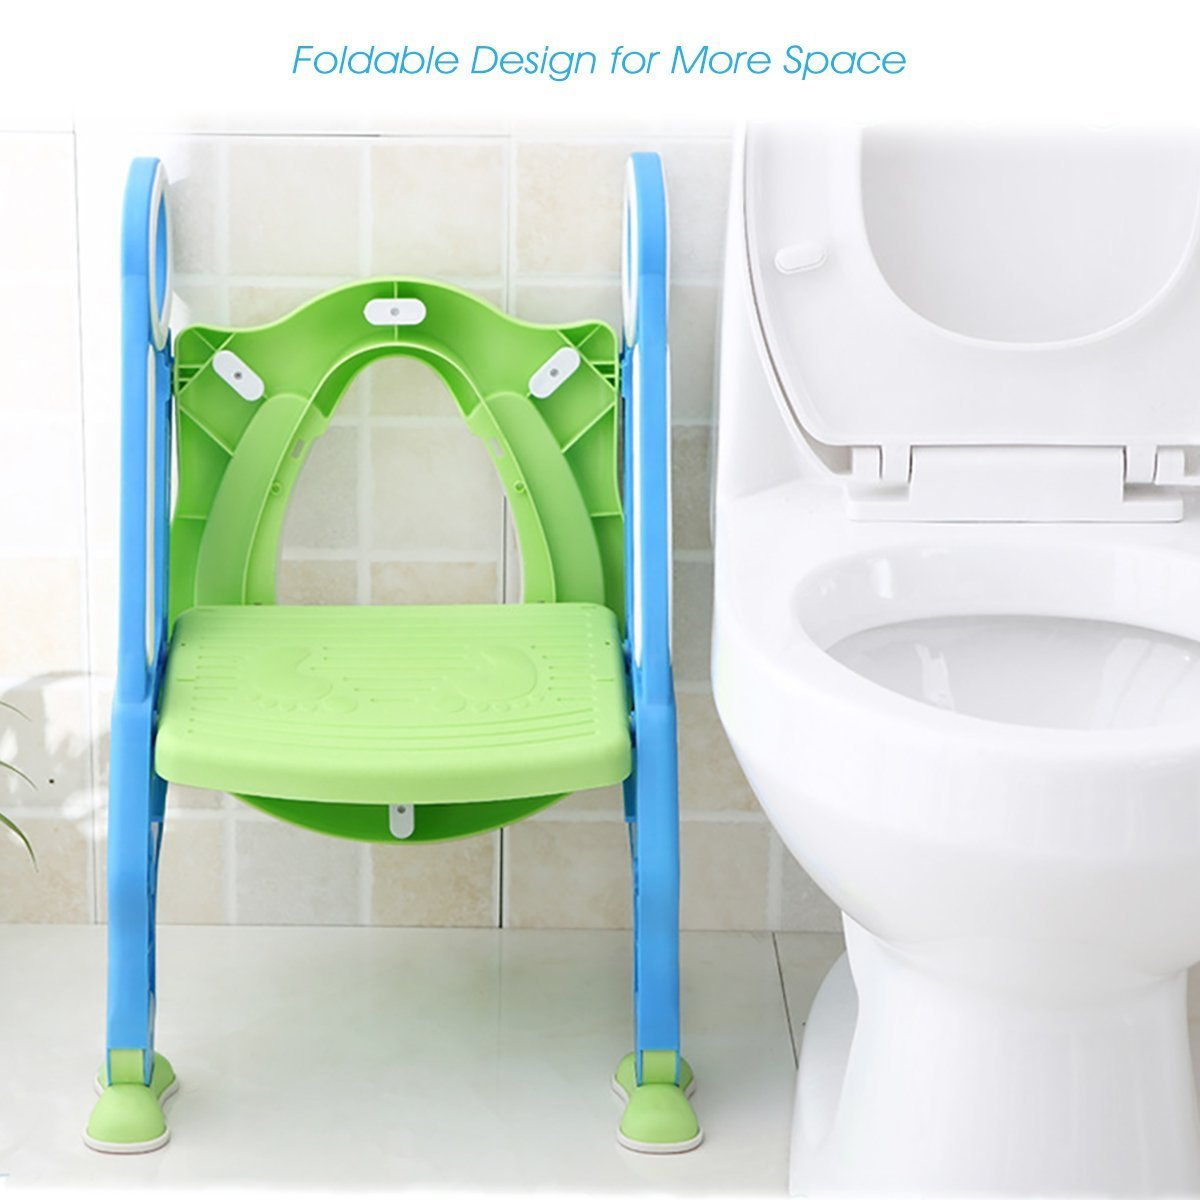 Potty Toilet Trainer Seat with Step Stool Ladder Adjustable Baby Toddler Kid Potty Toilet Seat for Boy and Girl Children's Toilet Training Seat Chair by Mangohood (Image #4)